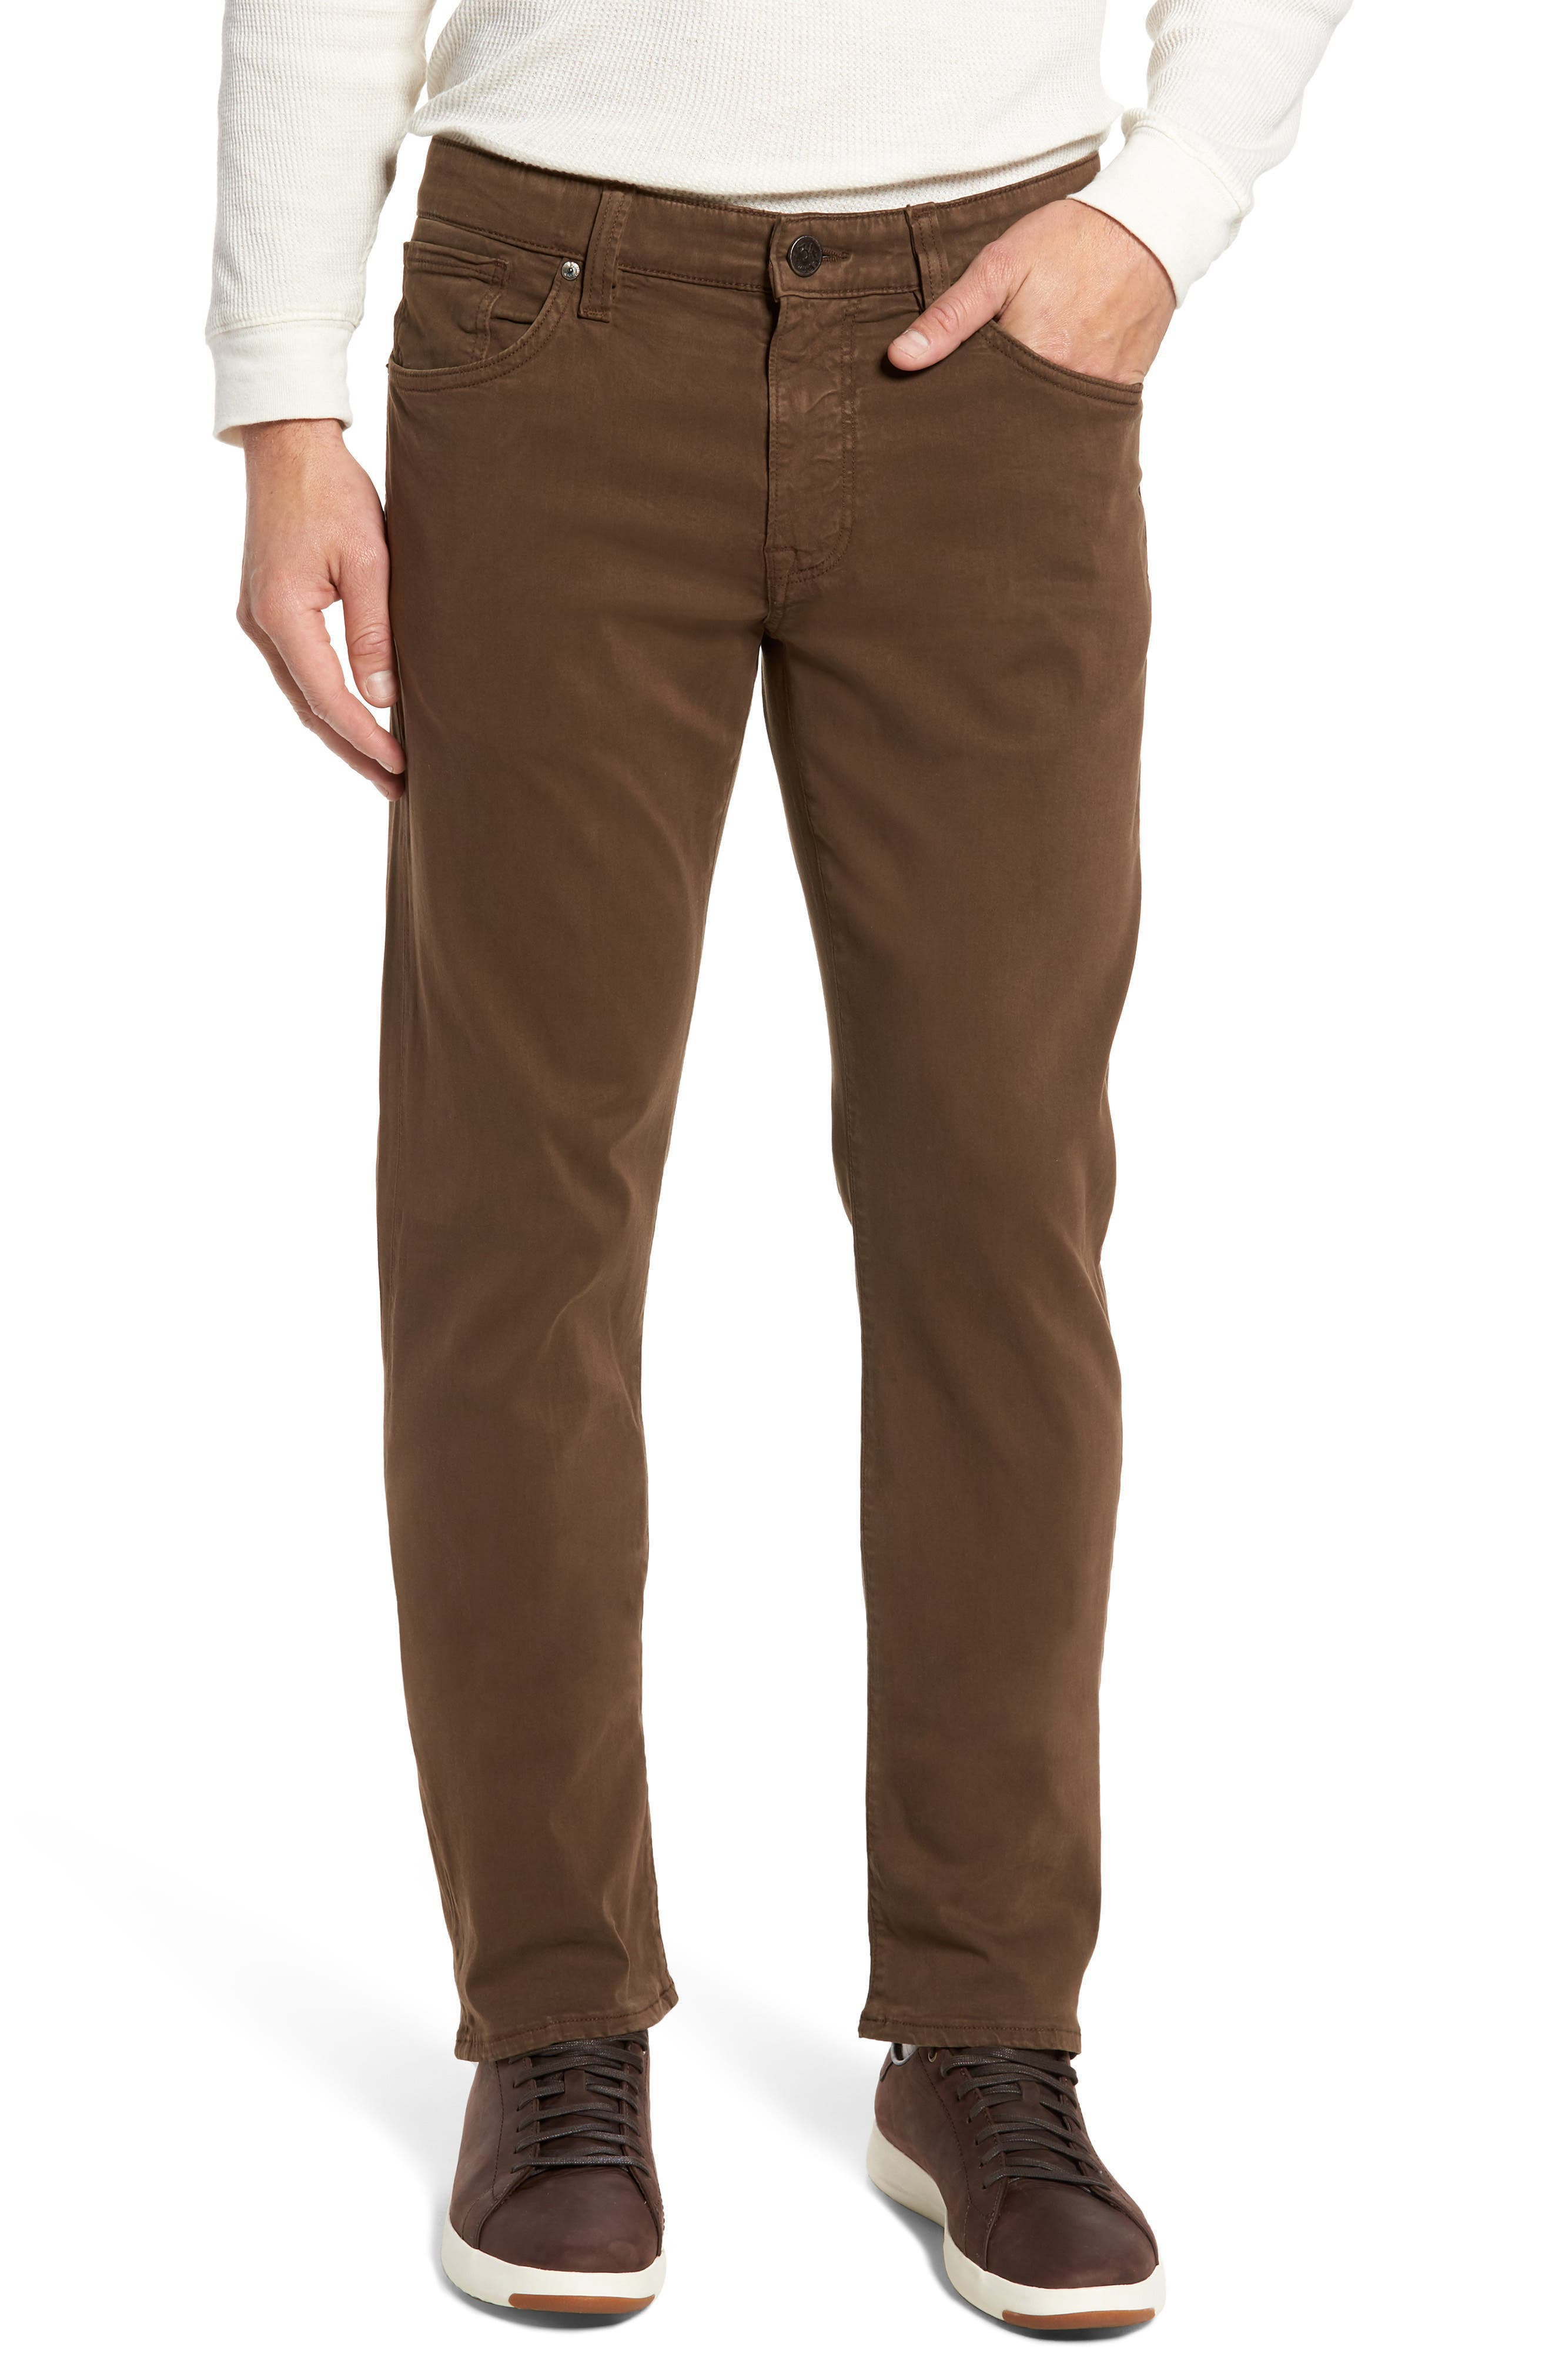 Courage Straight Leg Twill Pants,                         Main,                         color, 200